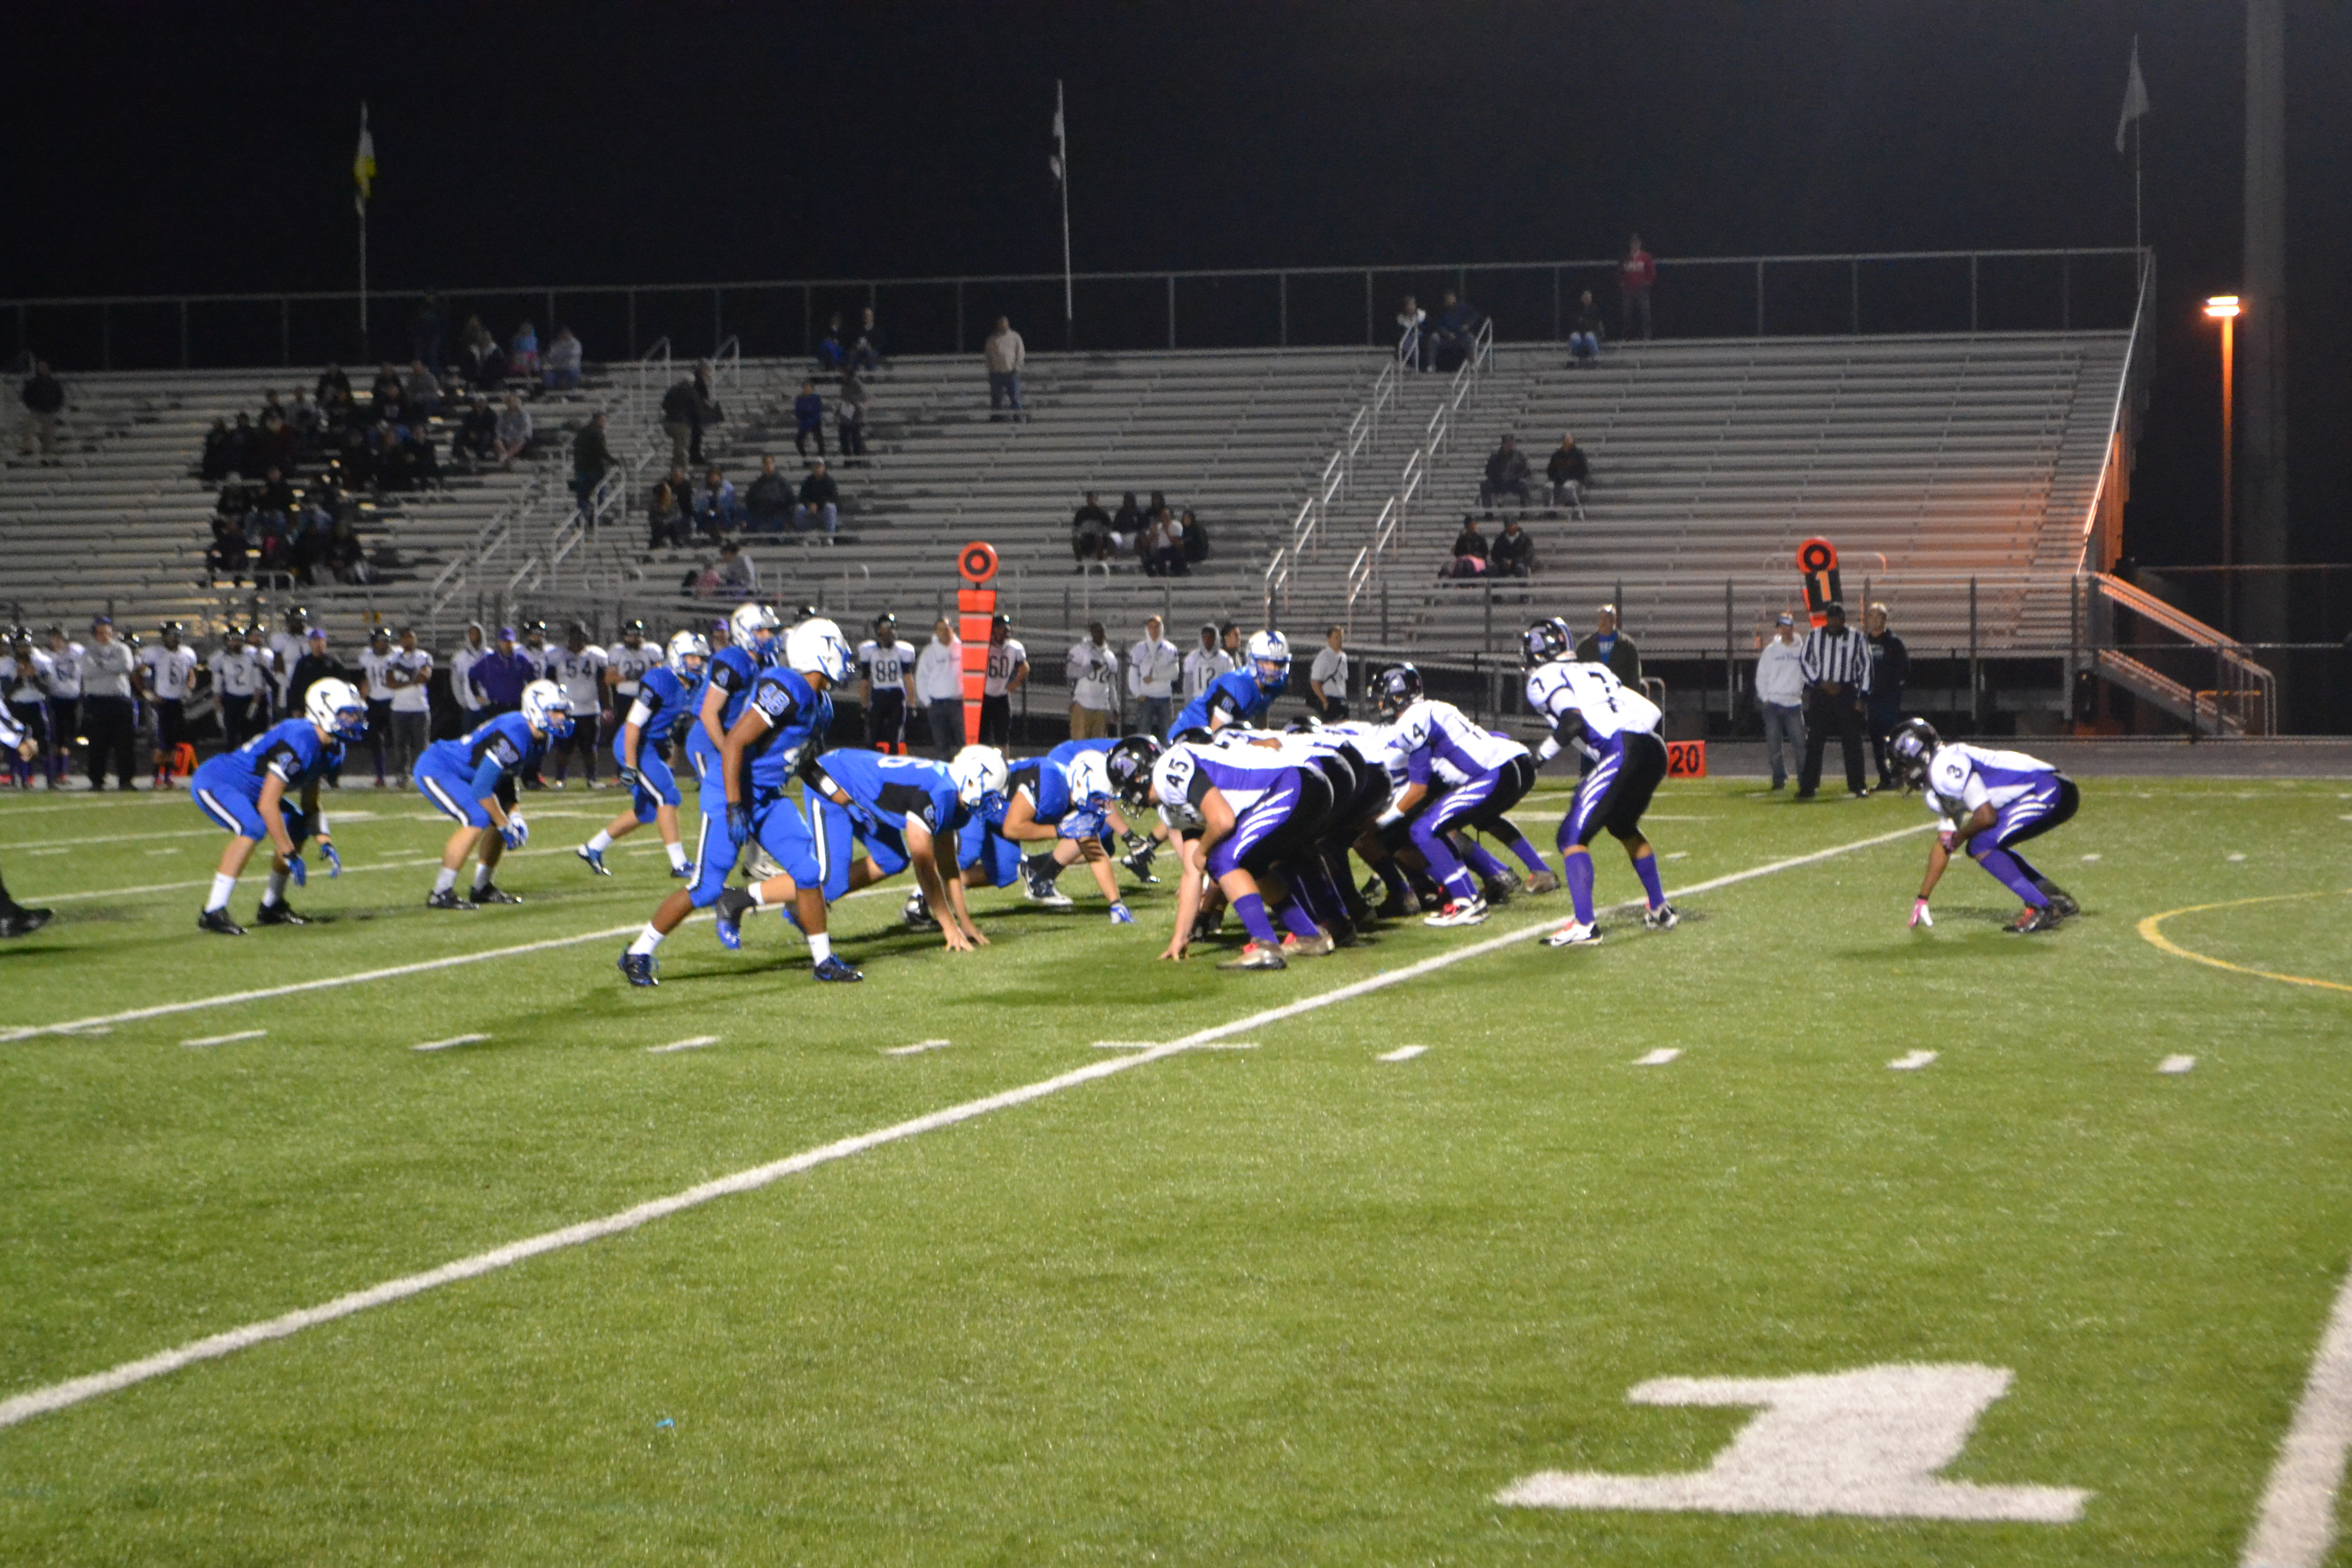 The Huskies defeated Potomac Falls 46-28, bringing their record to 7-1.